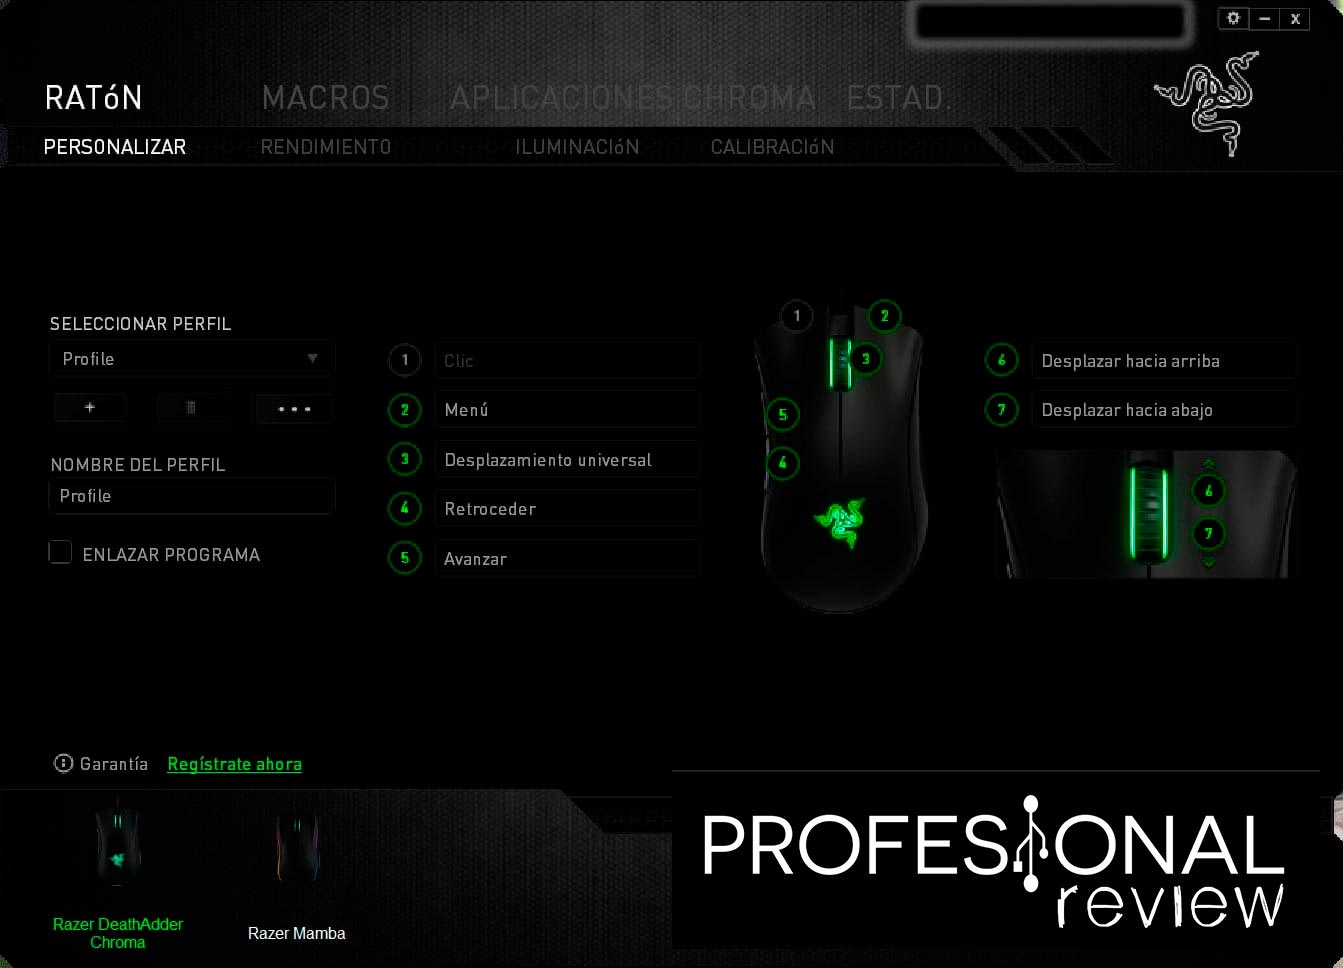 Razer Deathadder Chroma software